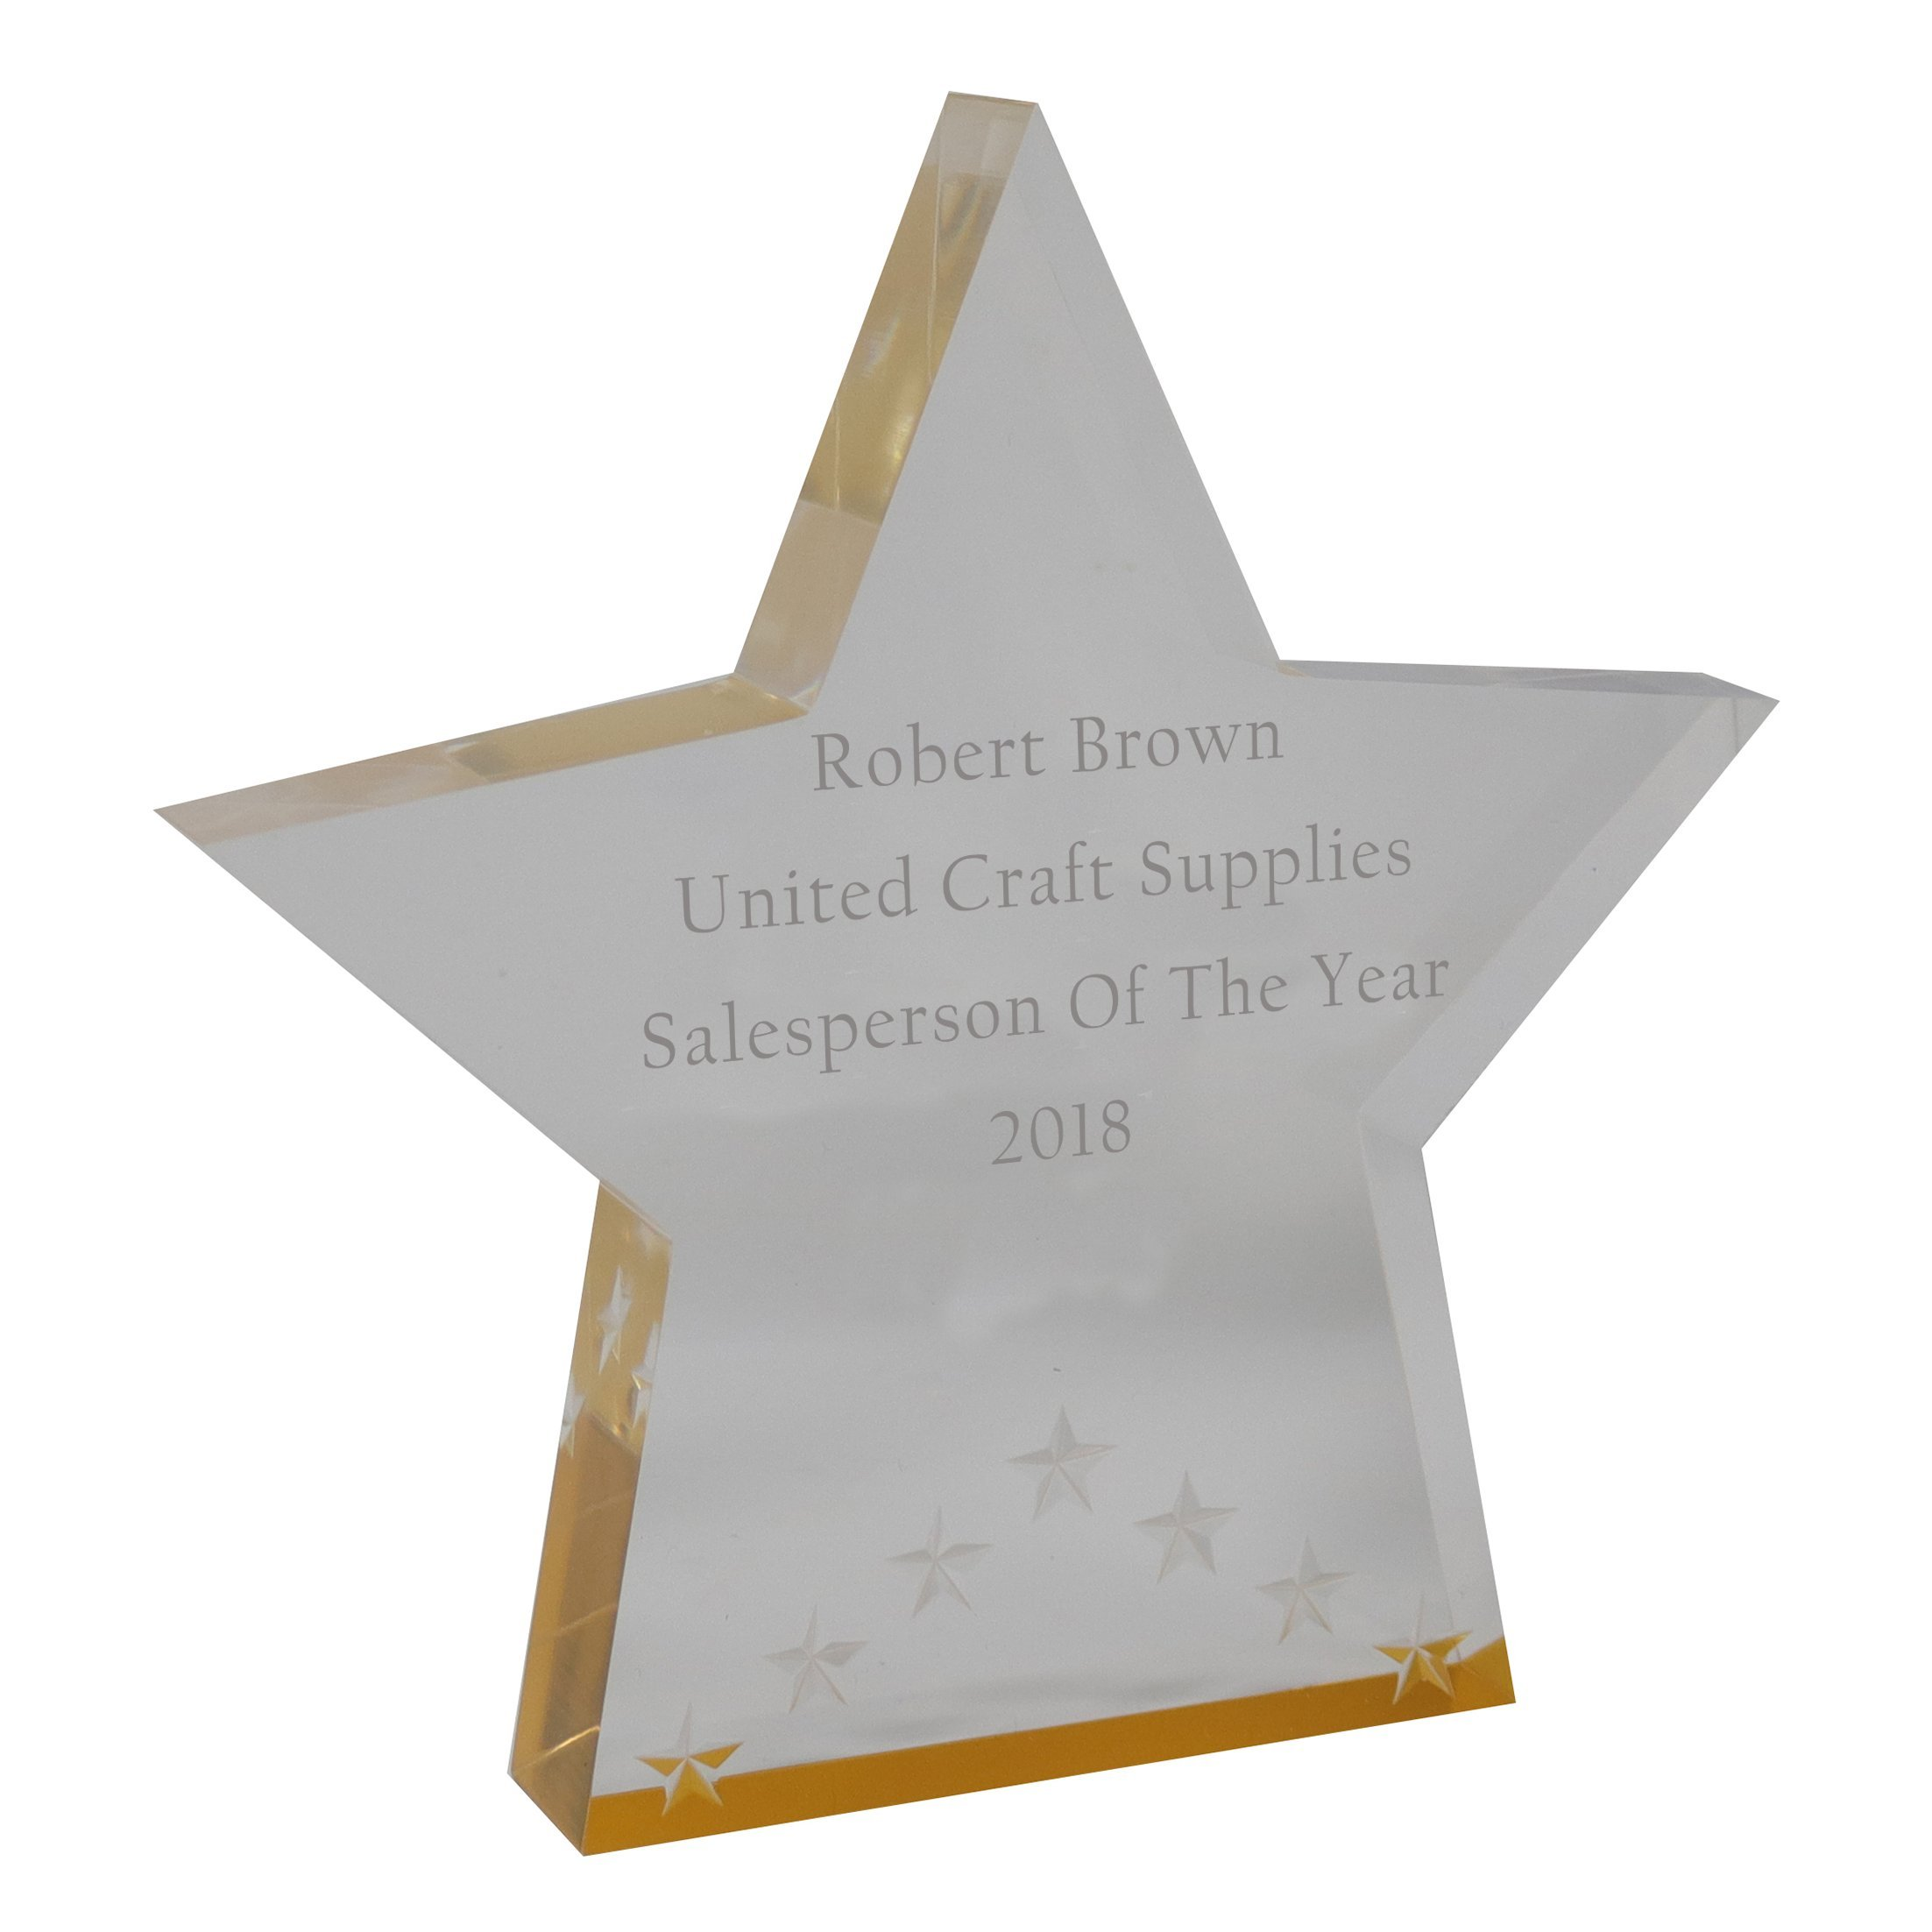 United Craft Supplies Personalized Trophy Award Plaque for Winner, Achievement at Work or School (Star, Gold)